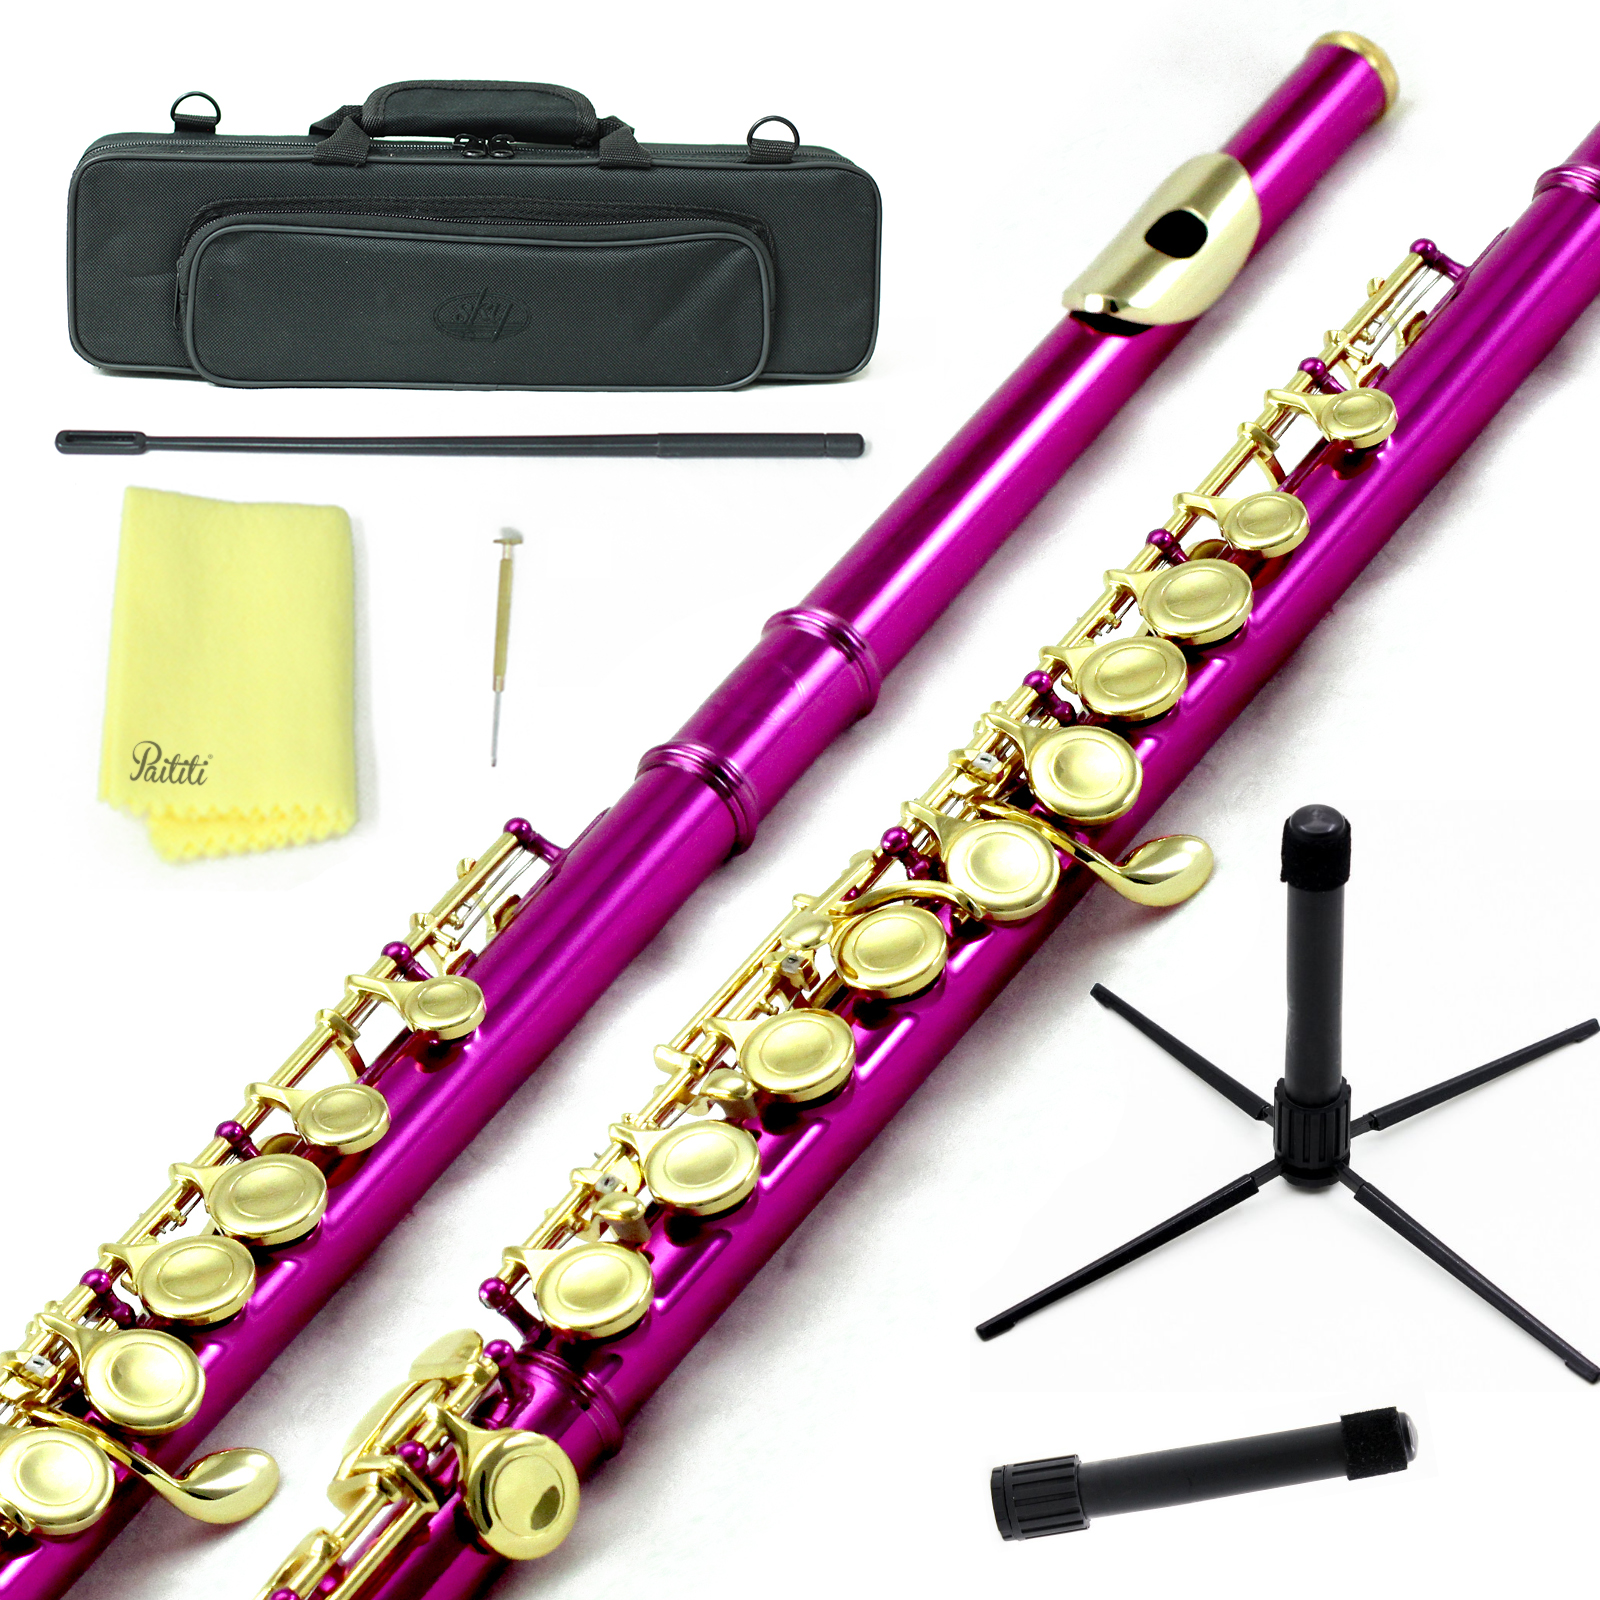 Sky Closed Hole C Flute with Lightweight Case, Cleaning Rod, Cloth, Joint Grease and Screw Driver - Hot Pink Gold